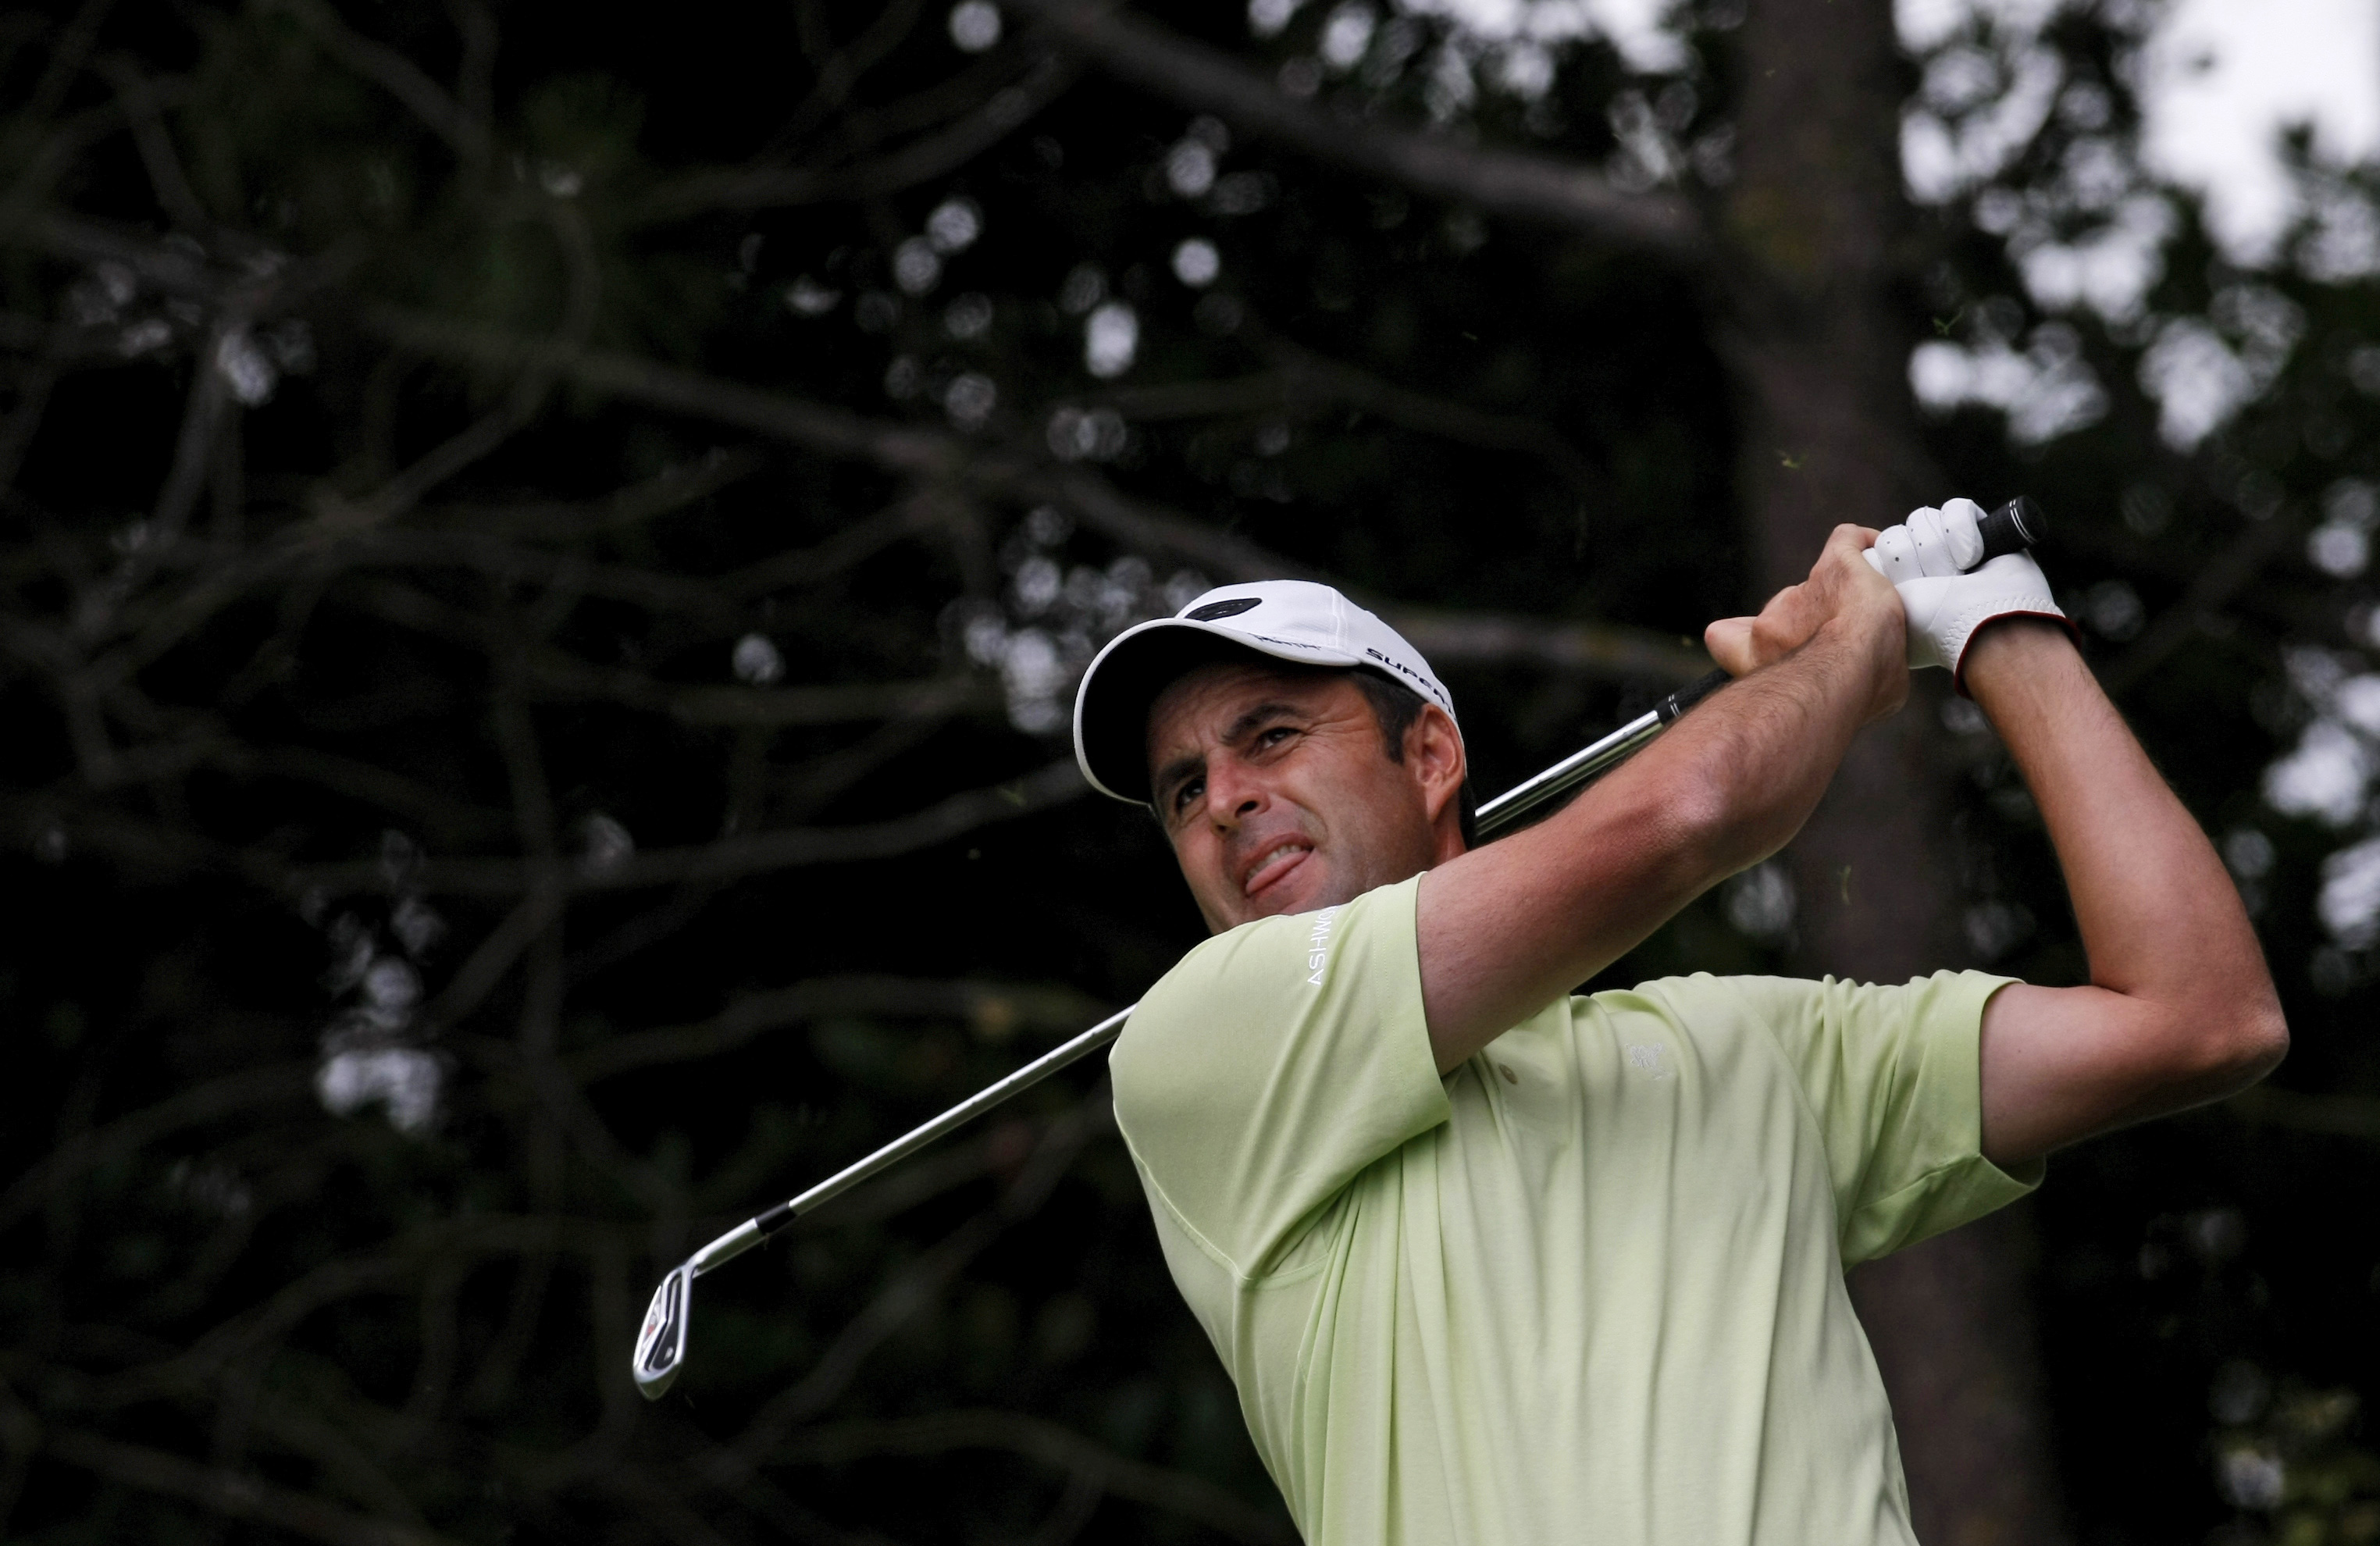 Britain's Richard Bland plays a shot from the 17th hole during the first round of the Estoril Open golf tournament in Sintra, Portugal on Thursday, June 10, 2010. (AP Photo/ Francisco Seco)